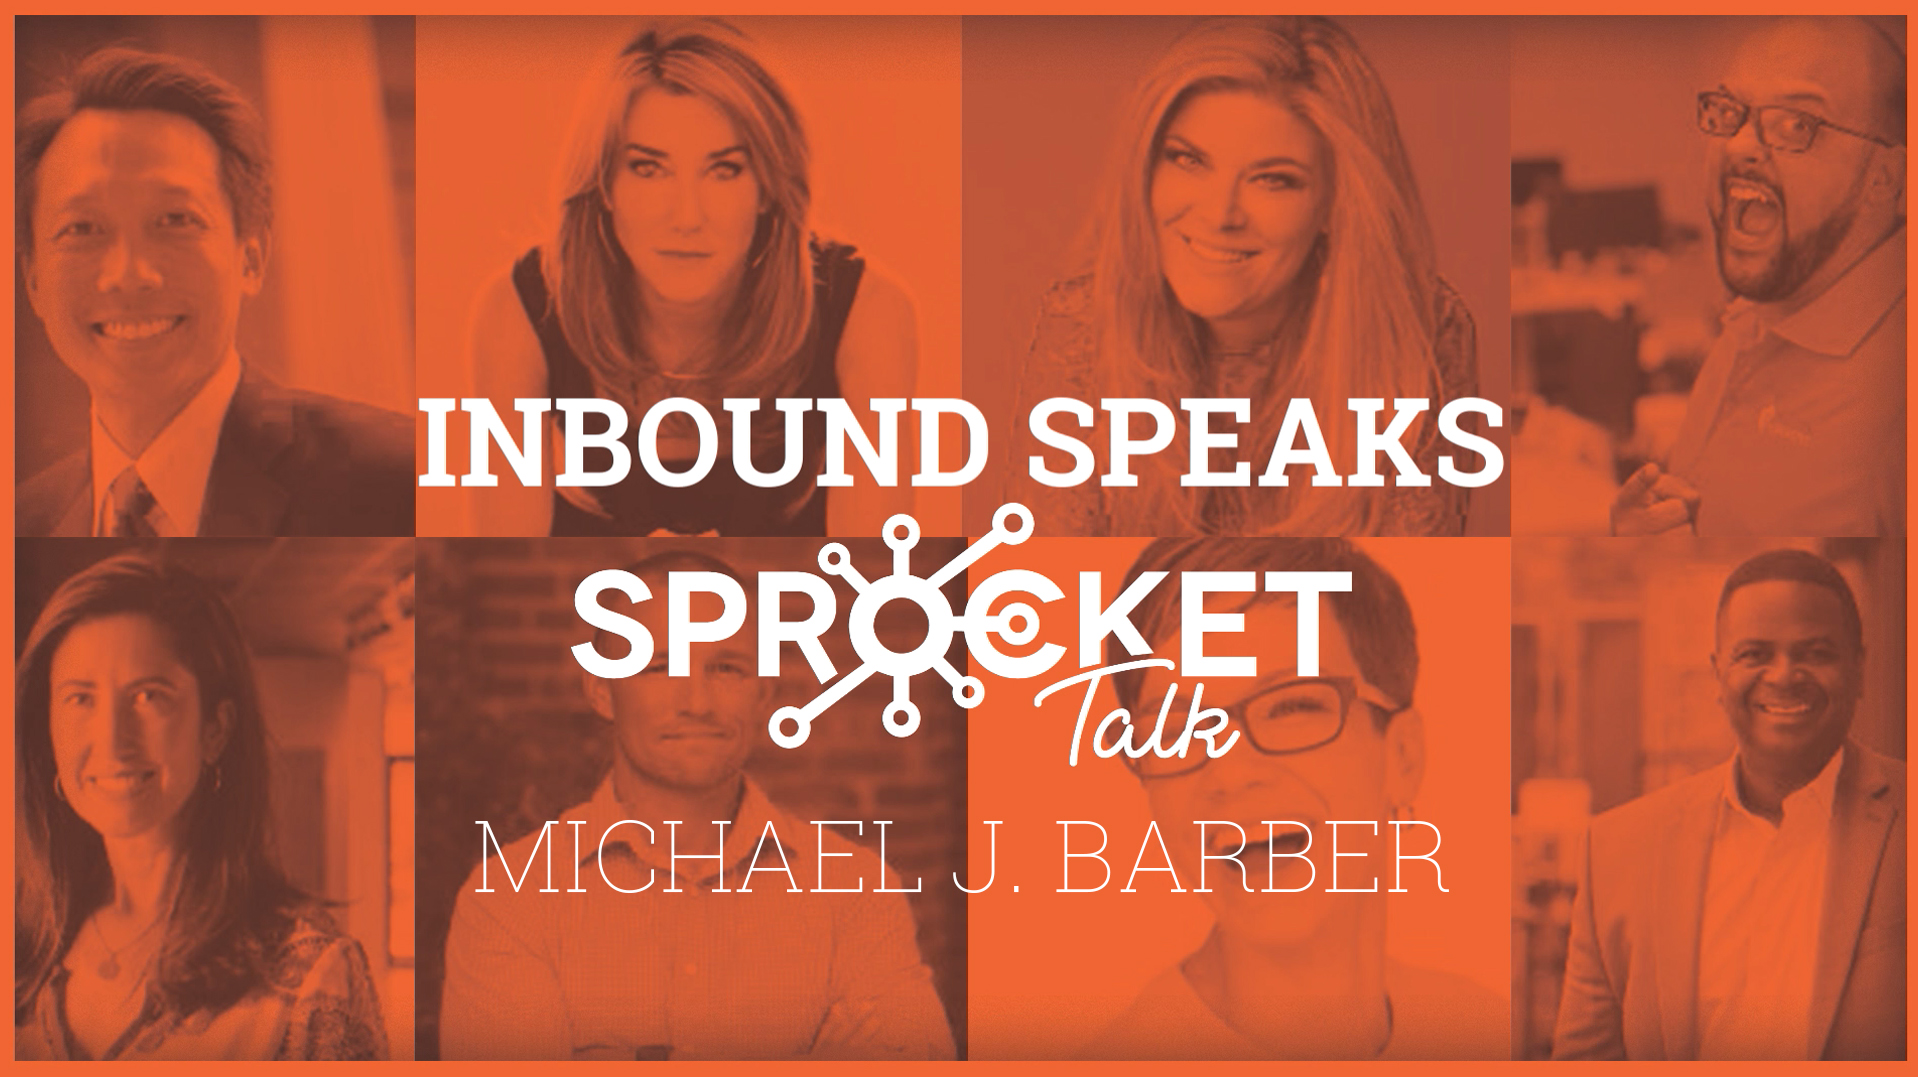 Michael J. Barber Deep Dive: Email 2020: Email Marketing for Next Year & Beyond #Inbound19